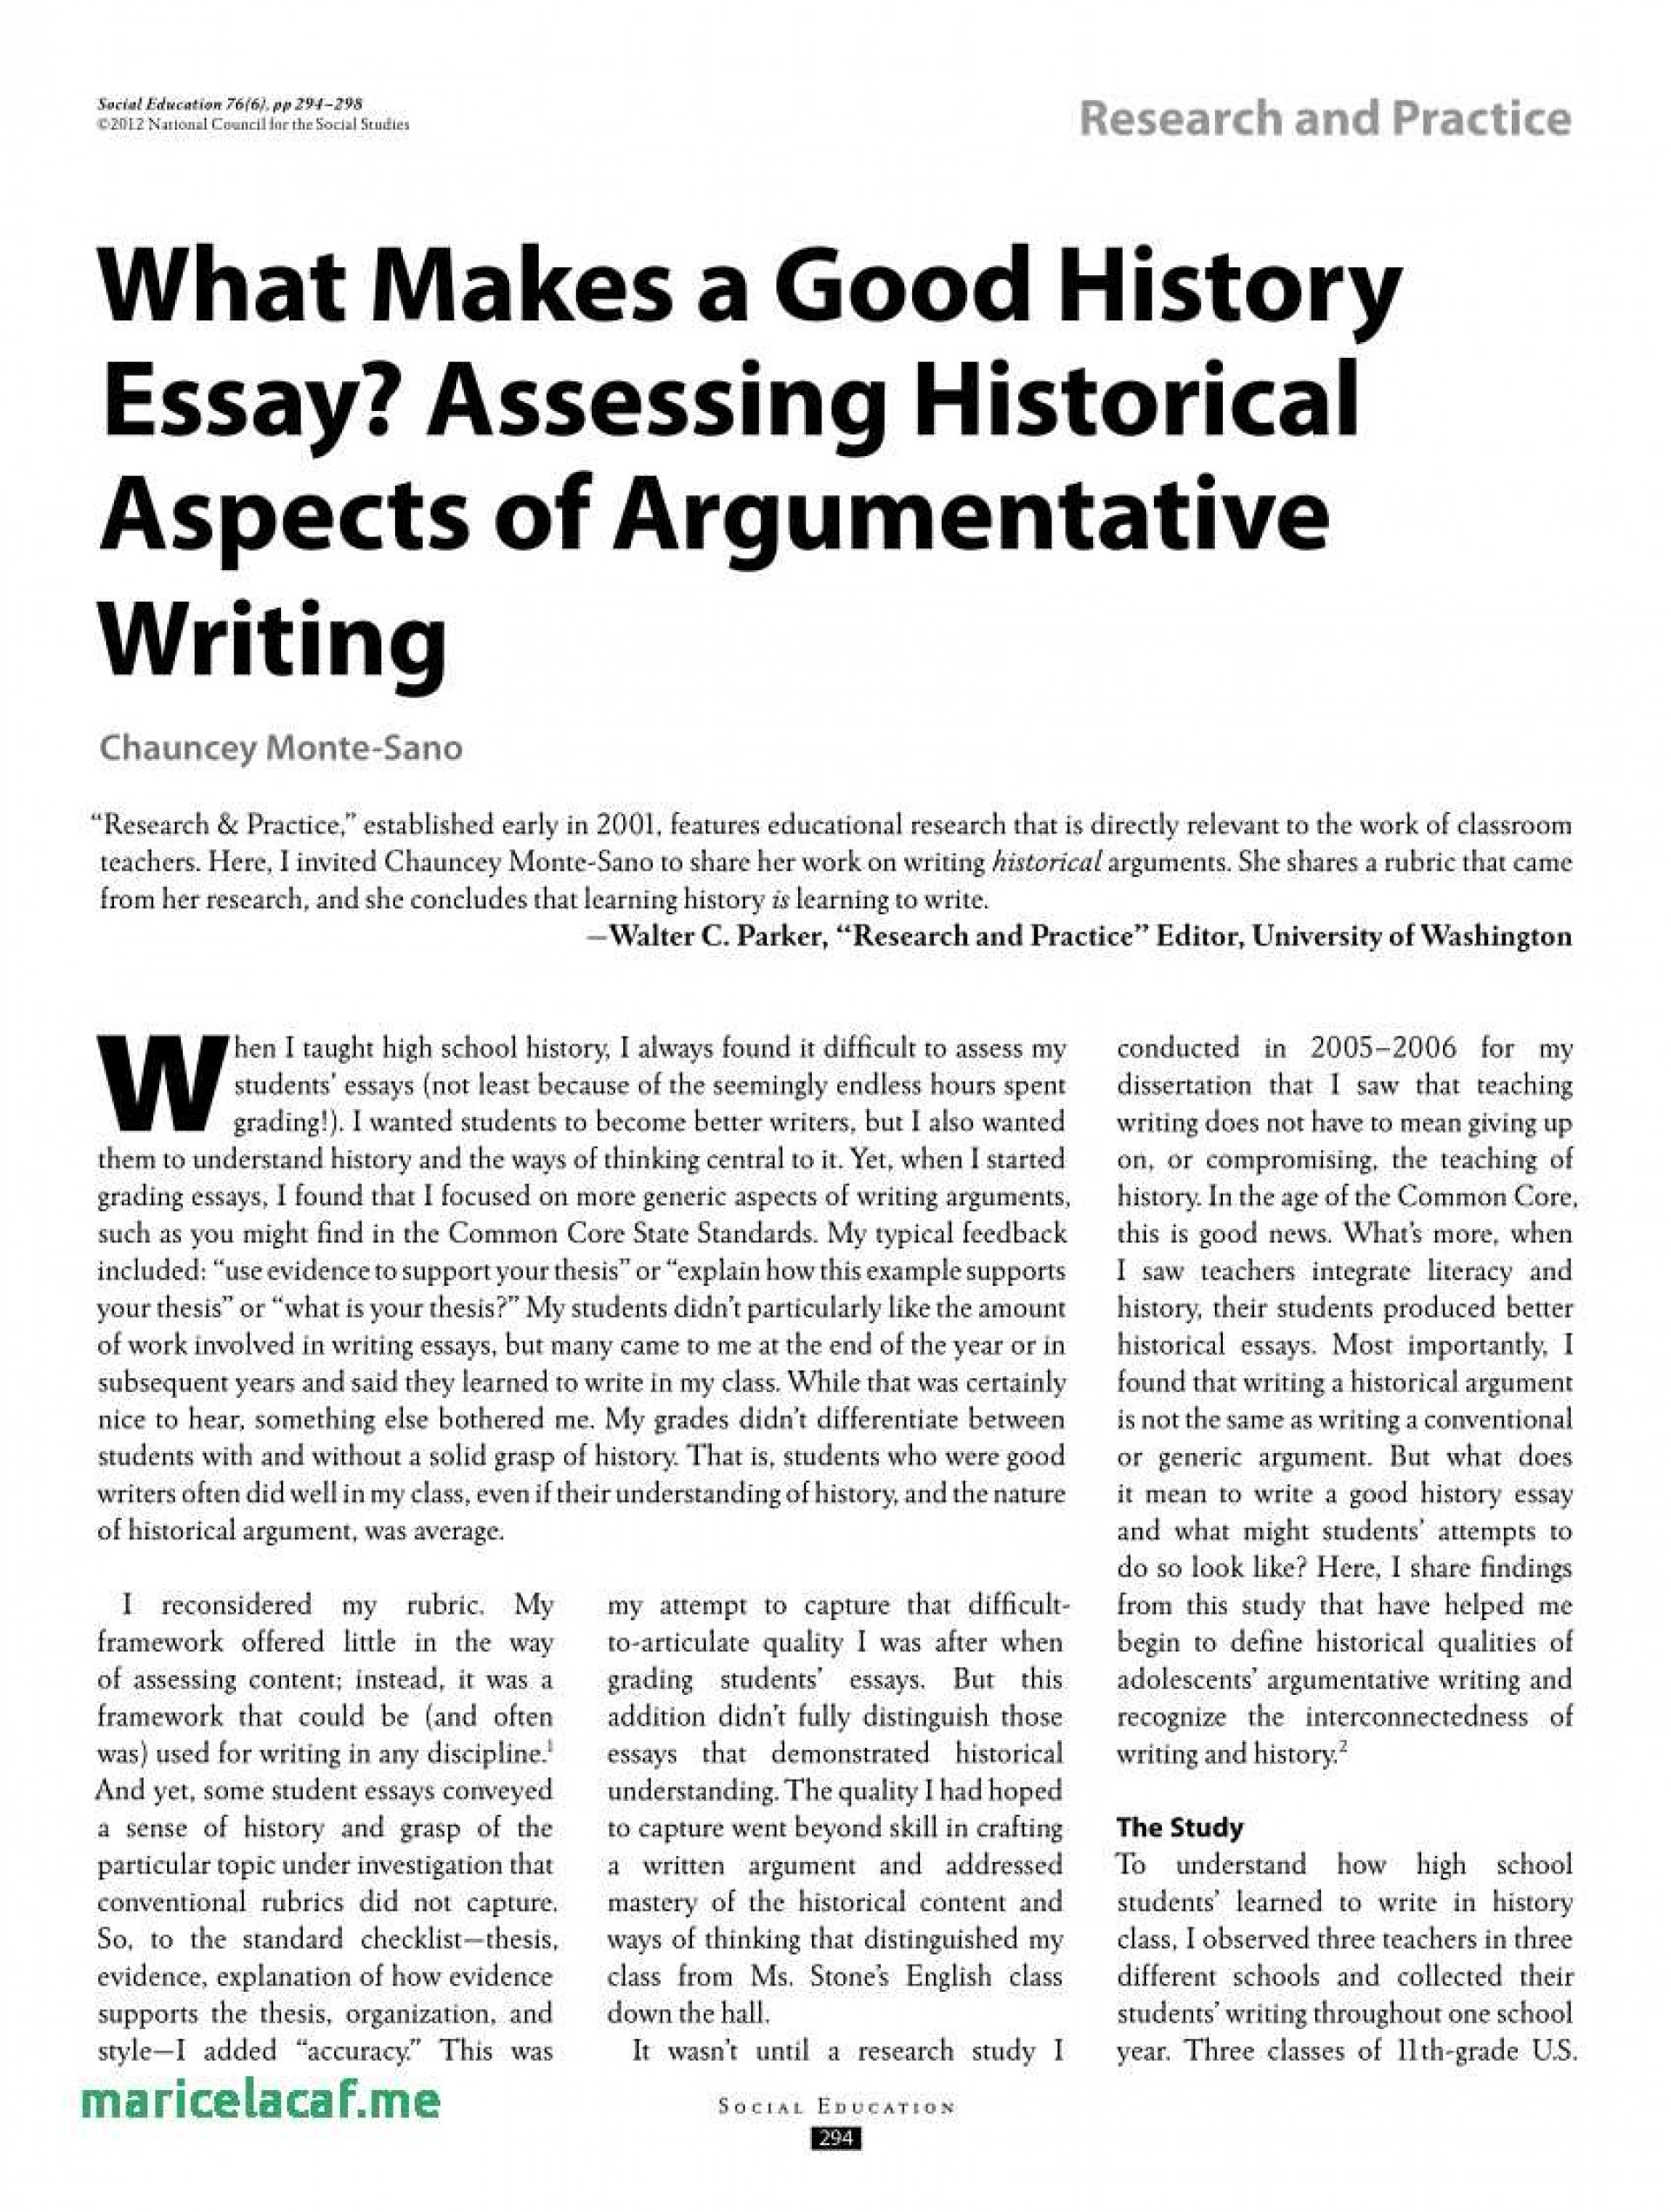 021 Research Paper Essay Maker Pdf What Makes Good History Assessing Historical Aspects Best Of Rubric For Social Studies Topics20 Topics In The Outstanding Philippines 1920